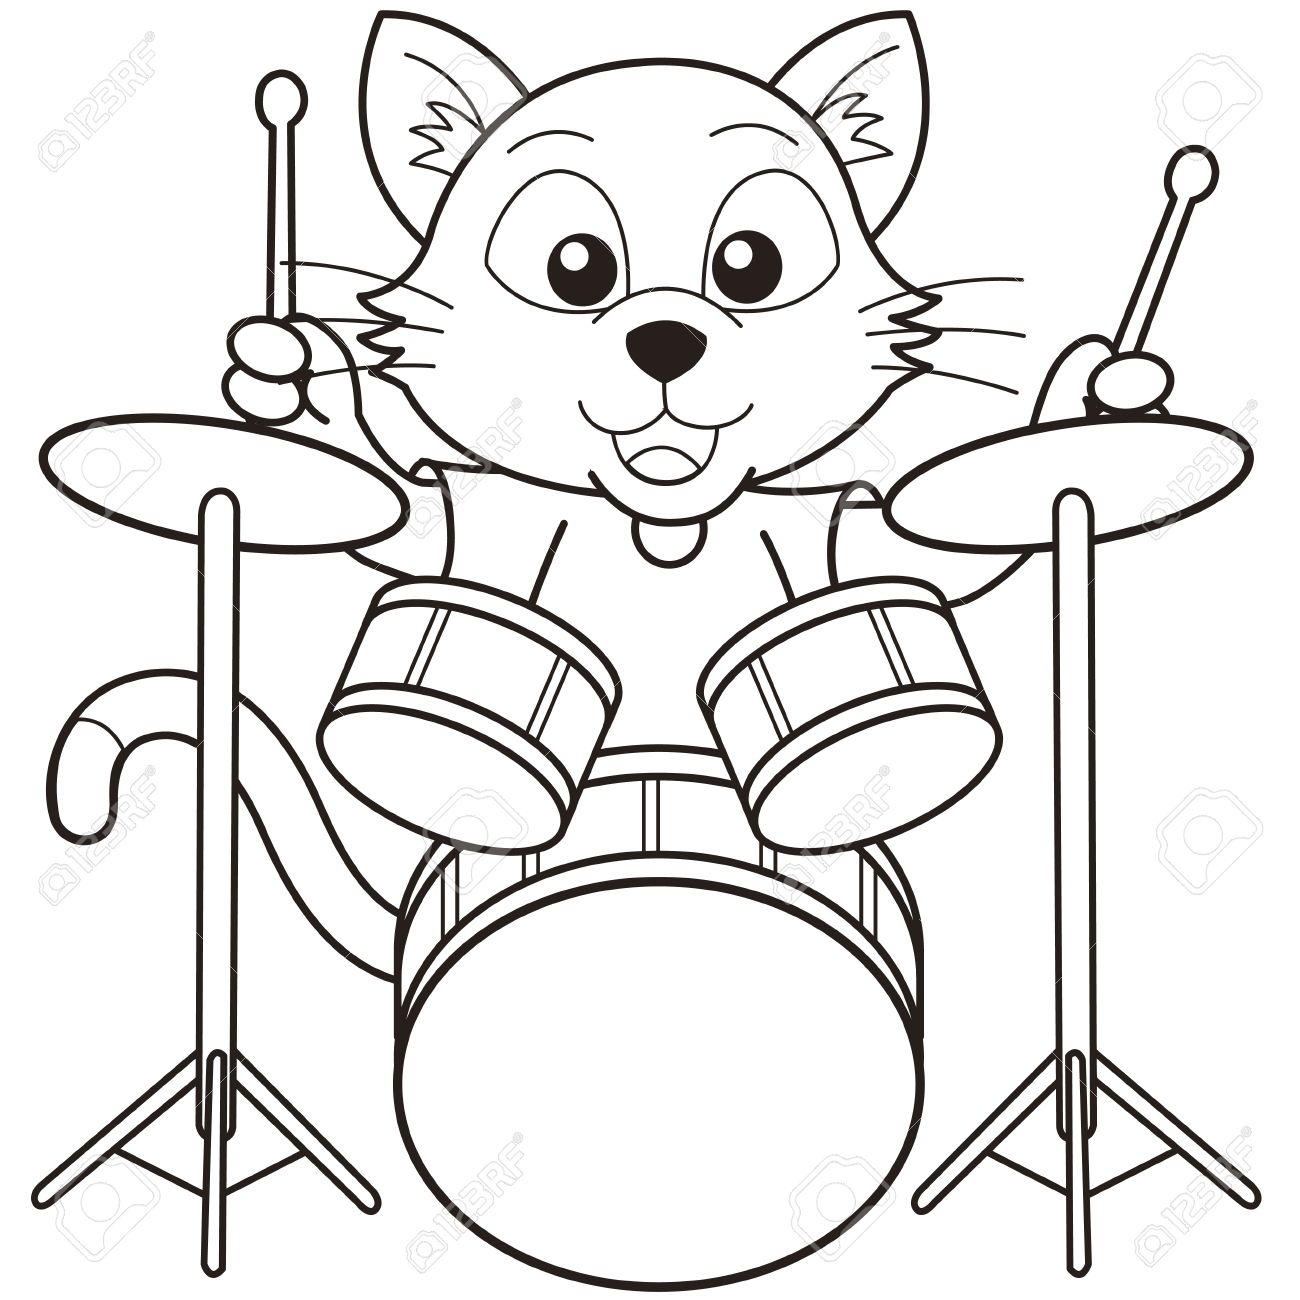 Coloring pictures drums - Cartoon Cat Playing Drums Black And White Stock Vector 18526815